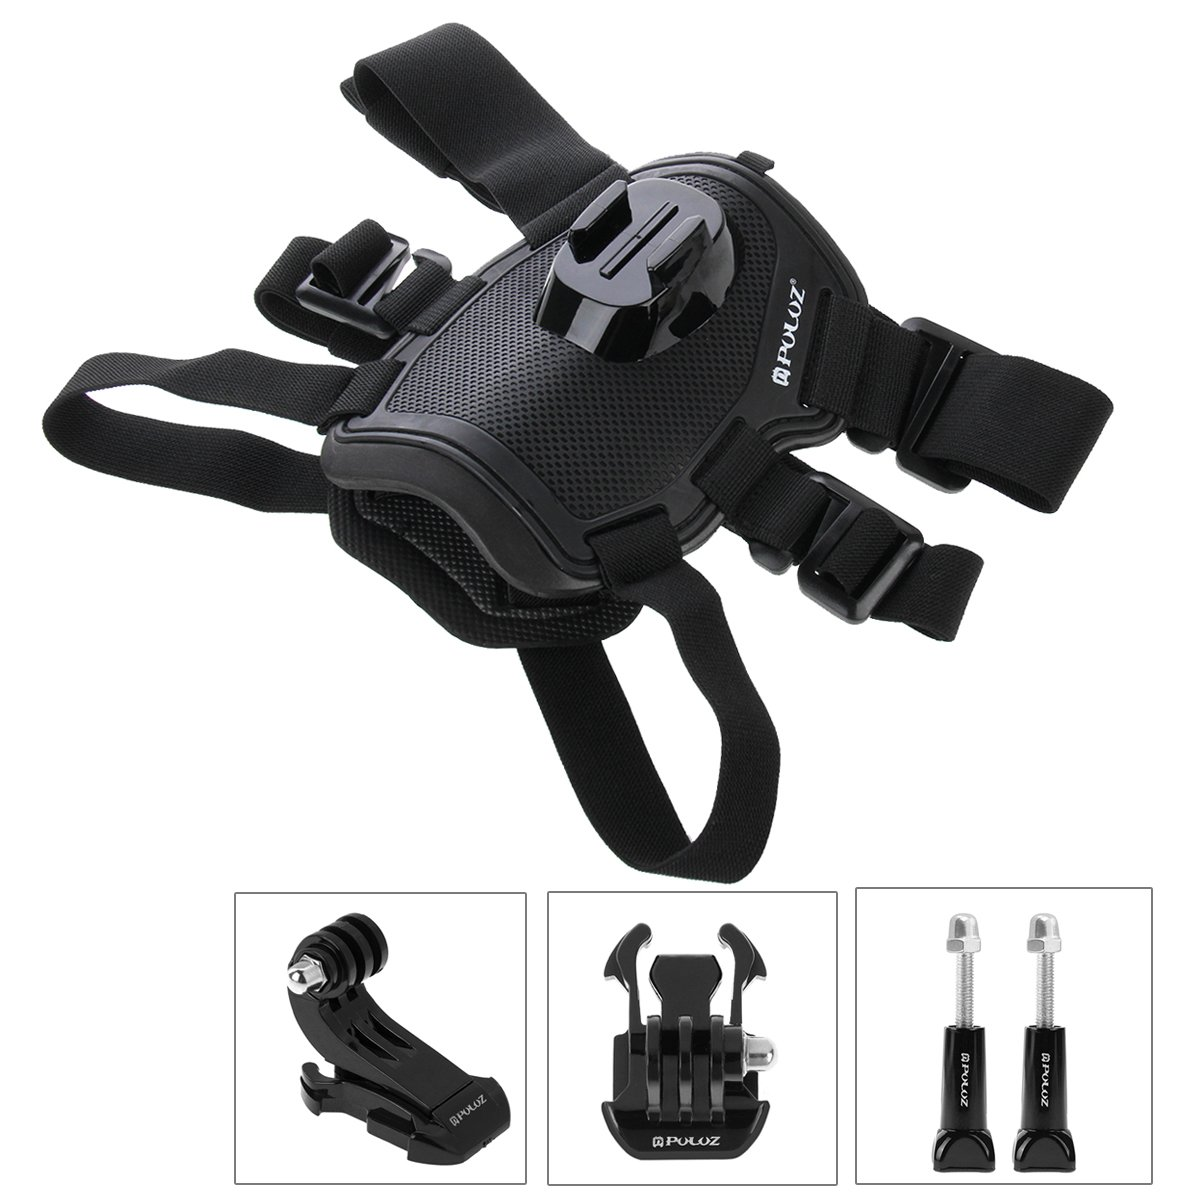 PULUZ Hound Dog Harness Adjustable Chest Strap Mount Belt Fetch Mount for GoPro Hero 6/5 /5 Session /4 Session /4/3+ /3/2 /1, Xiaoyi and Other Action Cameras (Dog Harness)